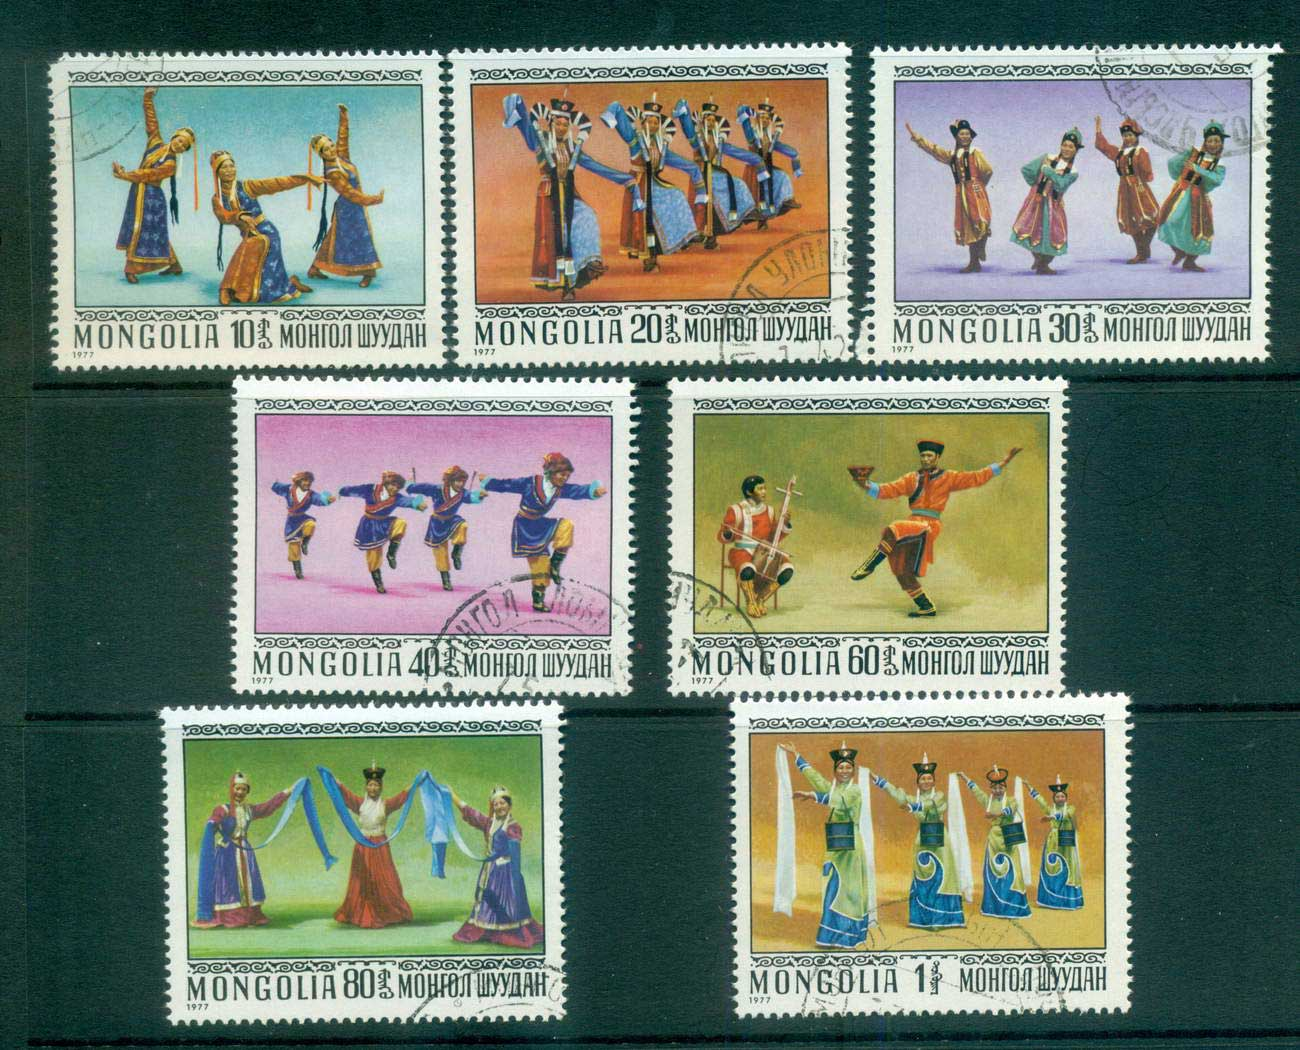 Mongolia 1977 Dancers CTO lot55996